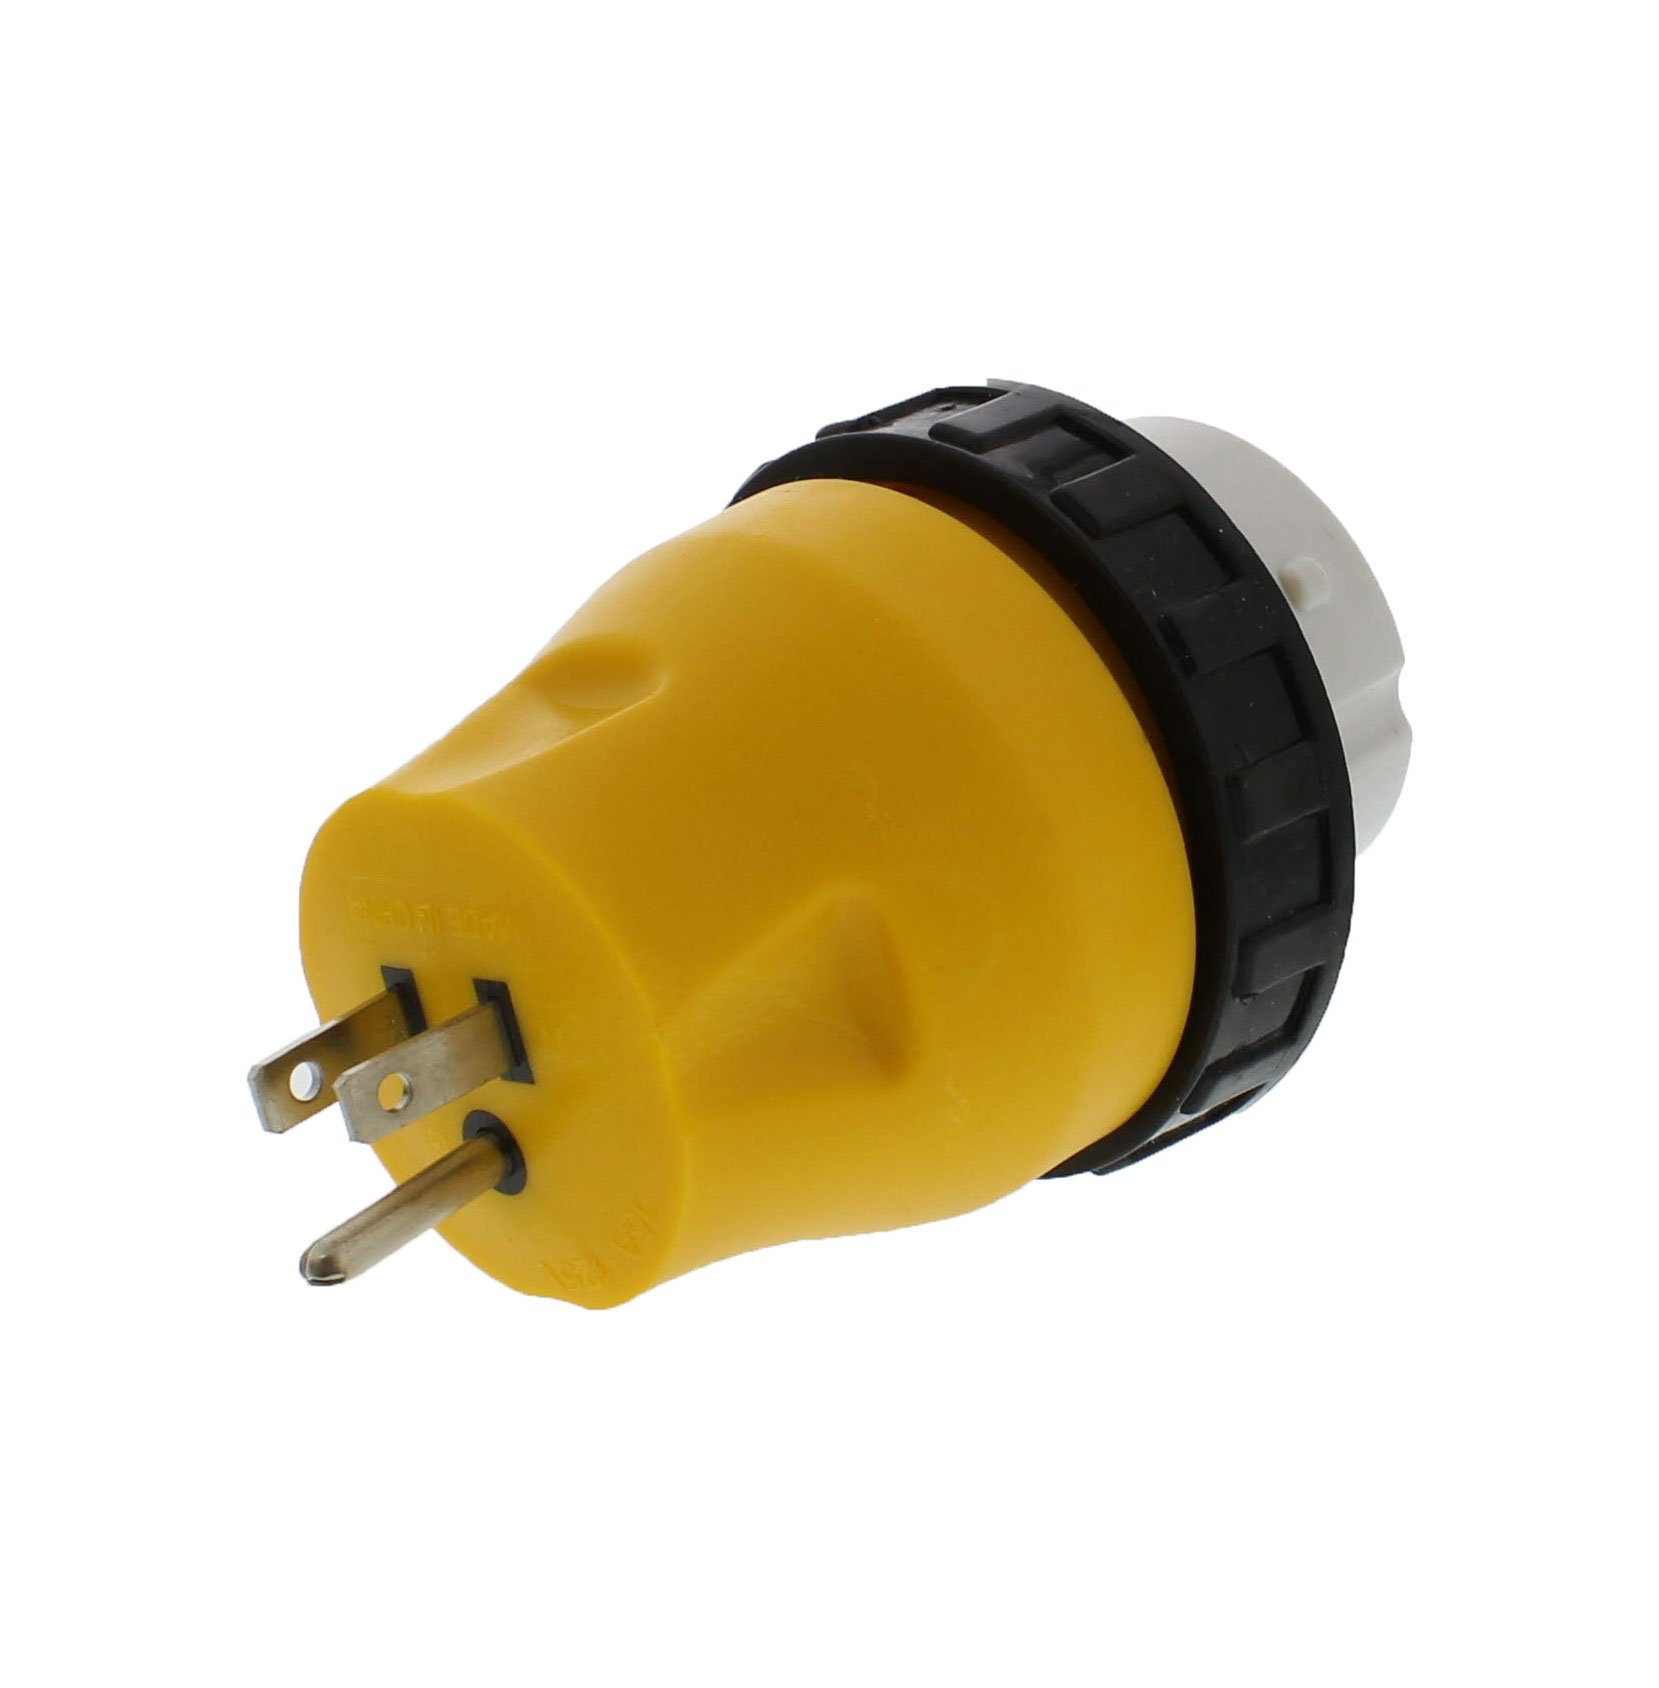 hight resolution of get quotations abn 15a to 50a rv power cord male to female 3 prong 125v ac